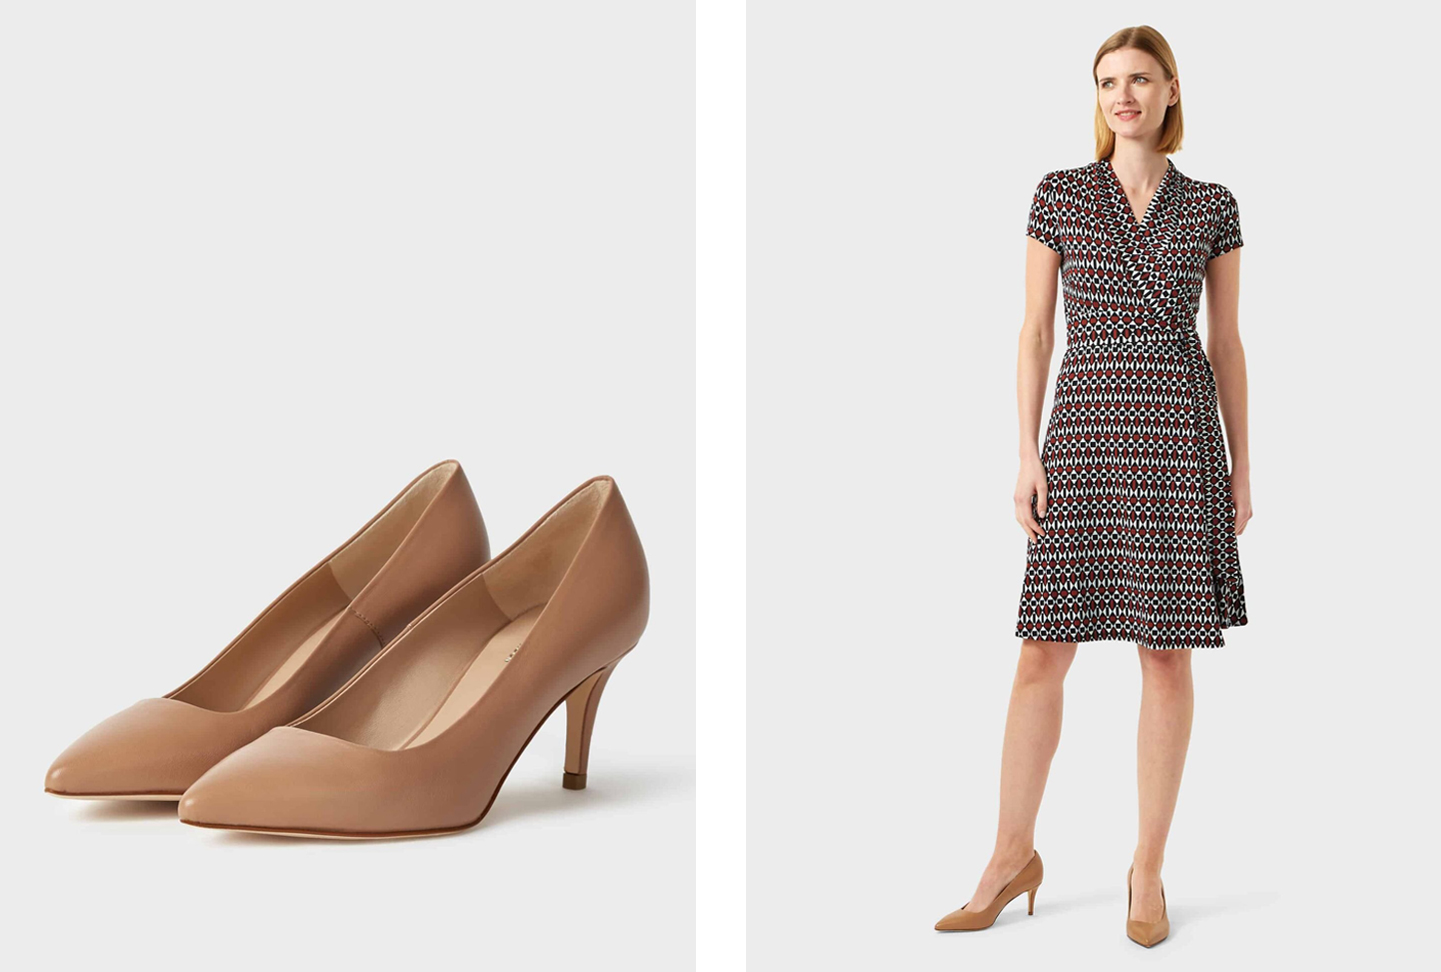 Image on the right shows a smart wrap dress paired with mid heeled nude court shoes, with a close up image of the court shoes on the left, by Hobbs.